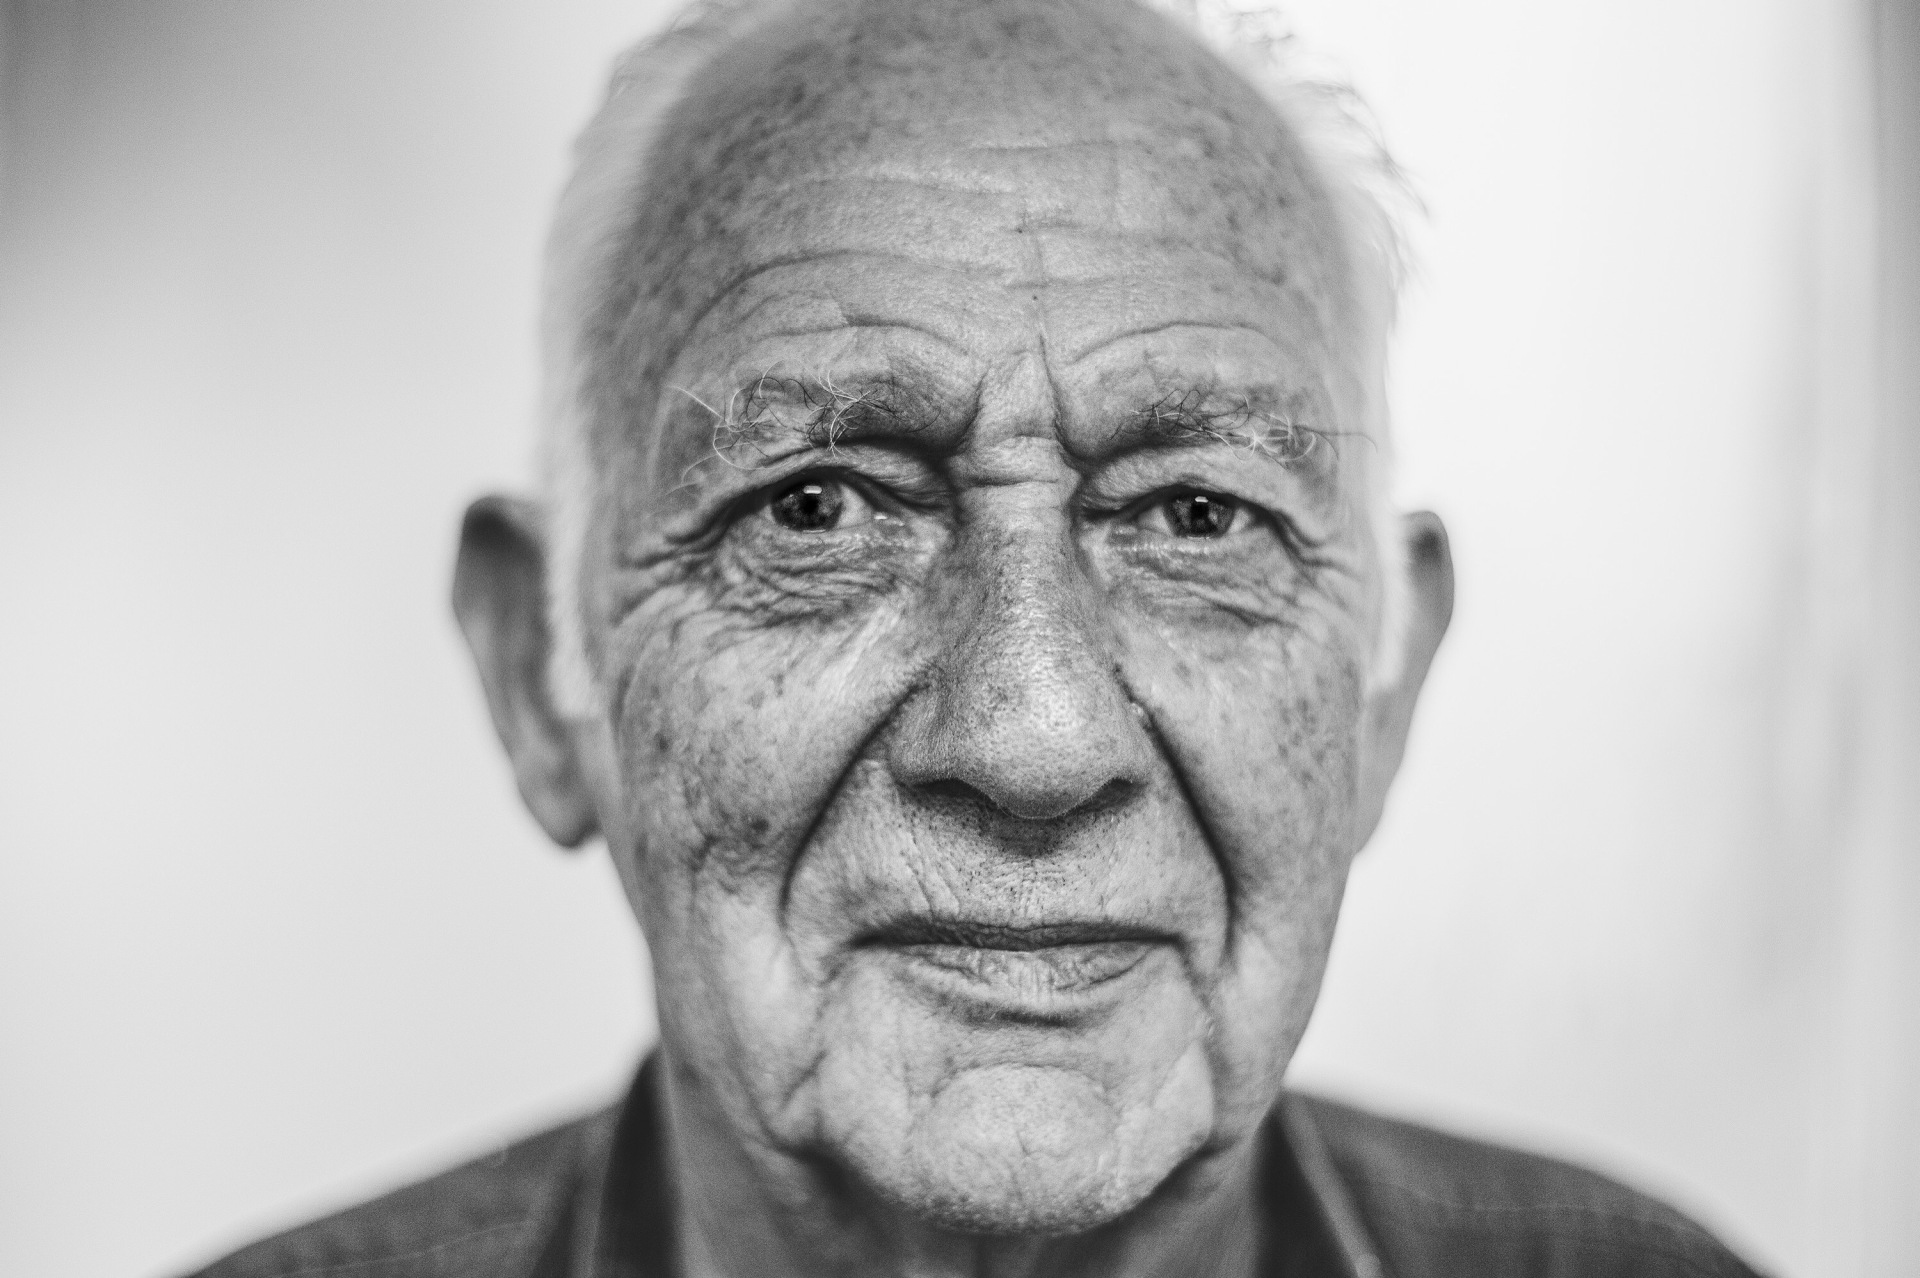 Headshot portrait of elderly man.